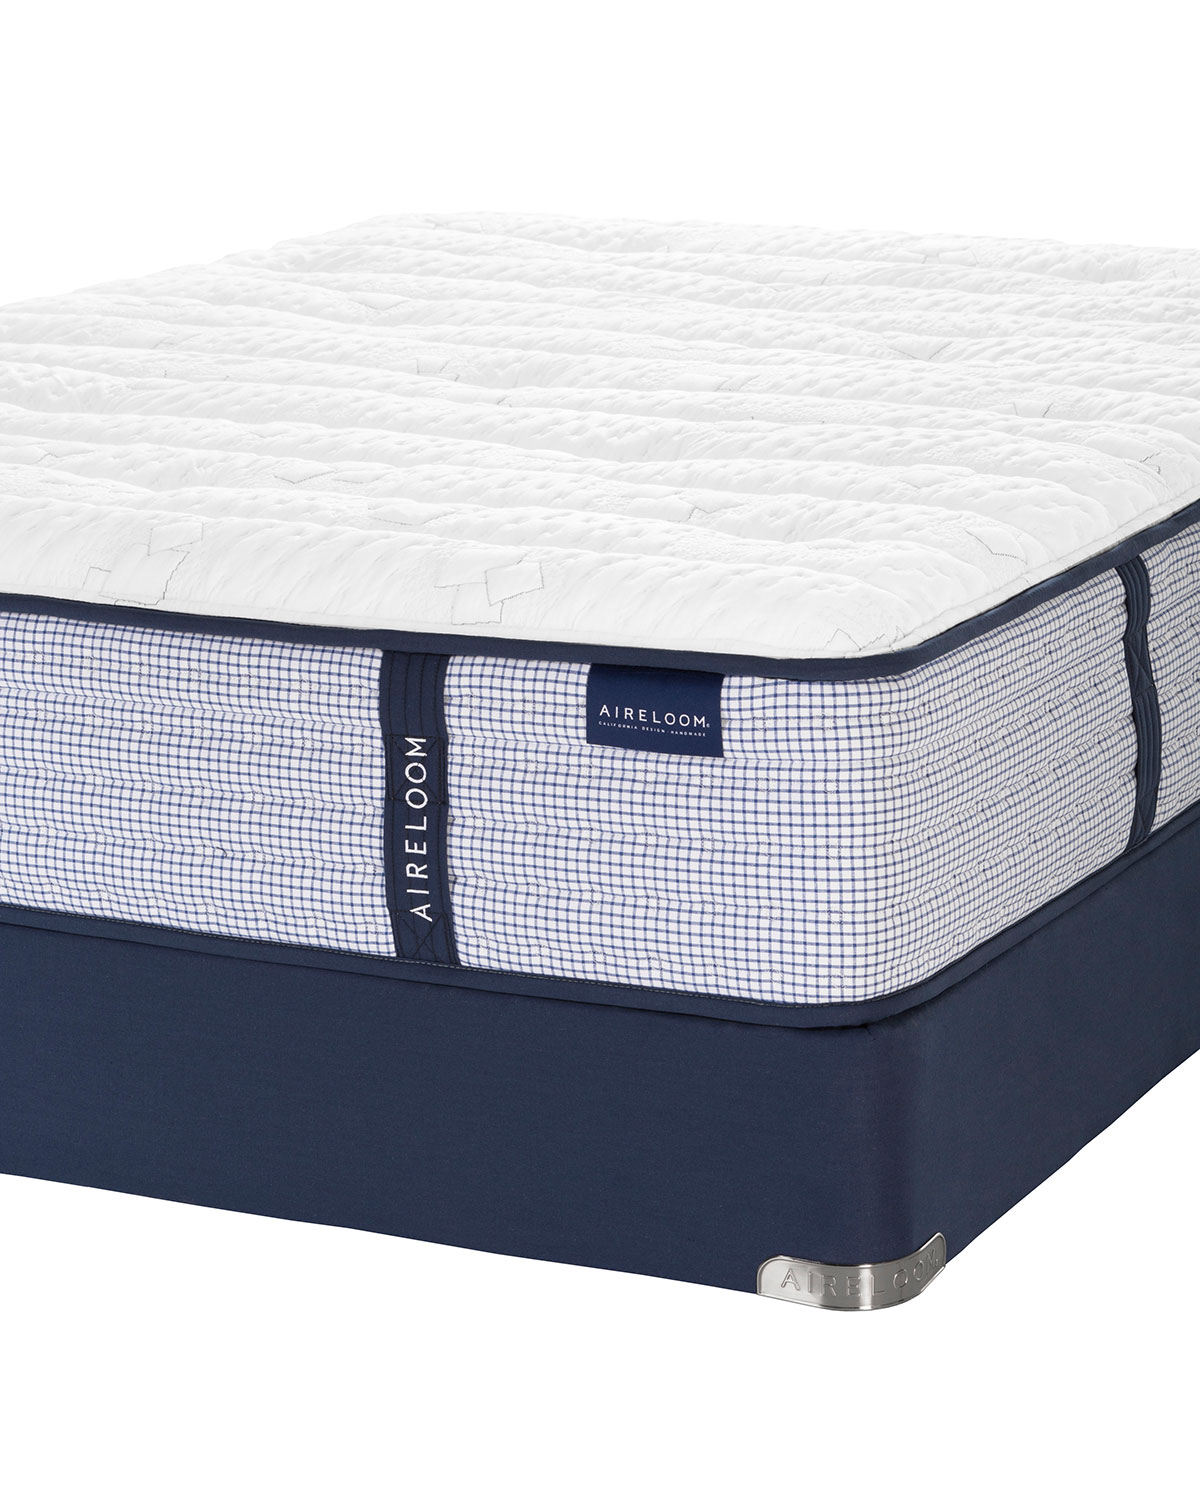 Aireloom Preferred Collection Turquoise Mattress - Twin